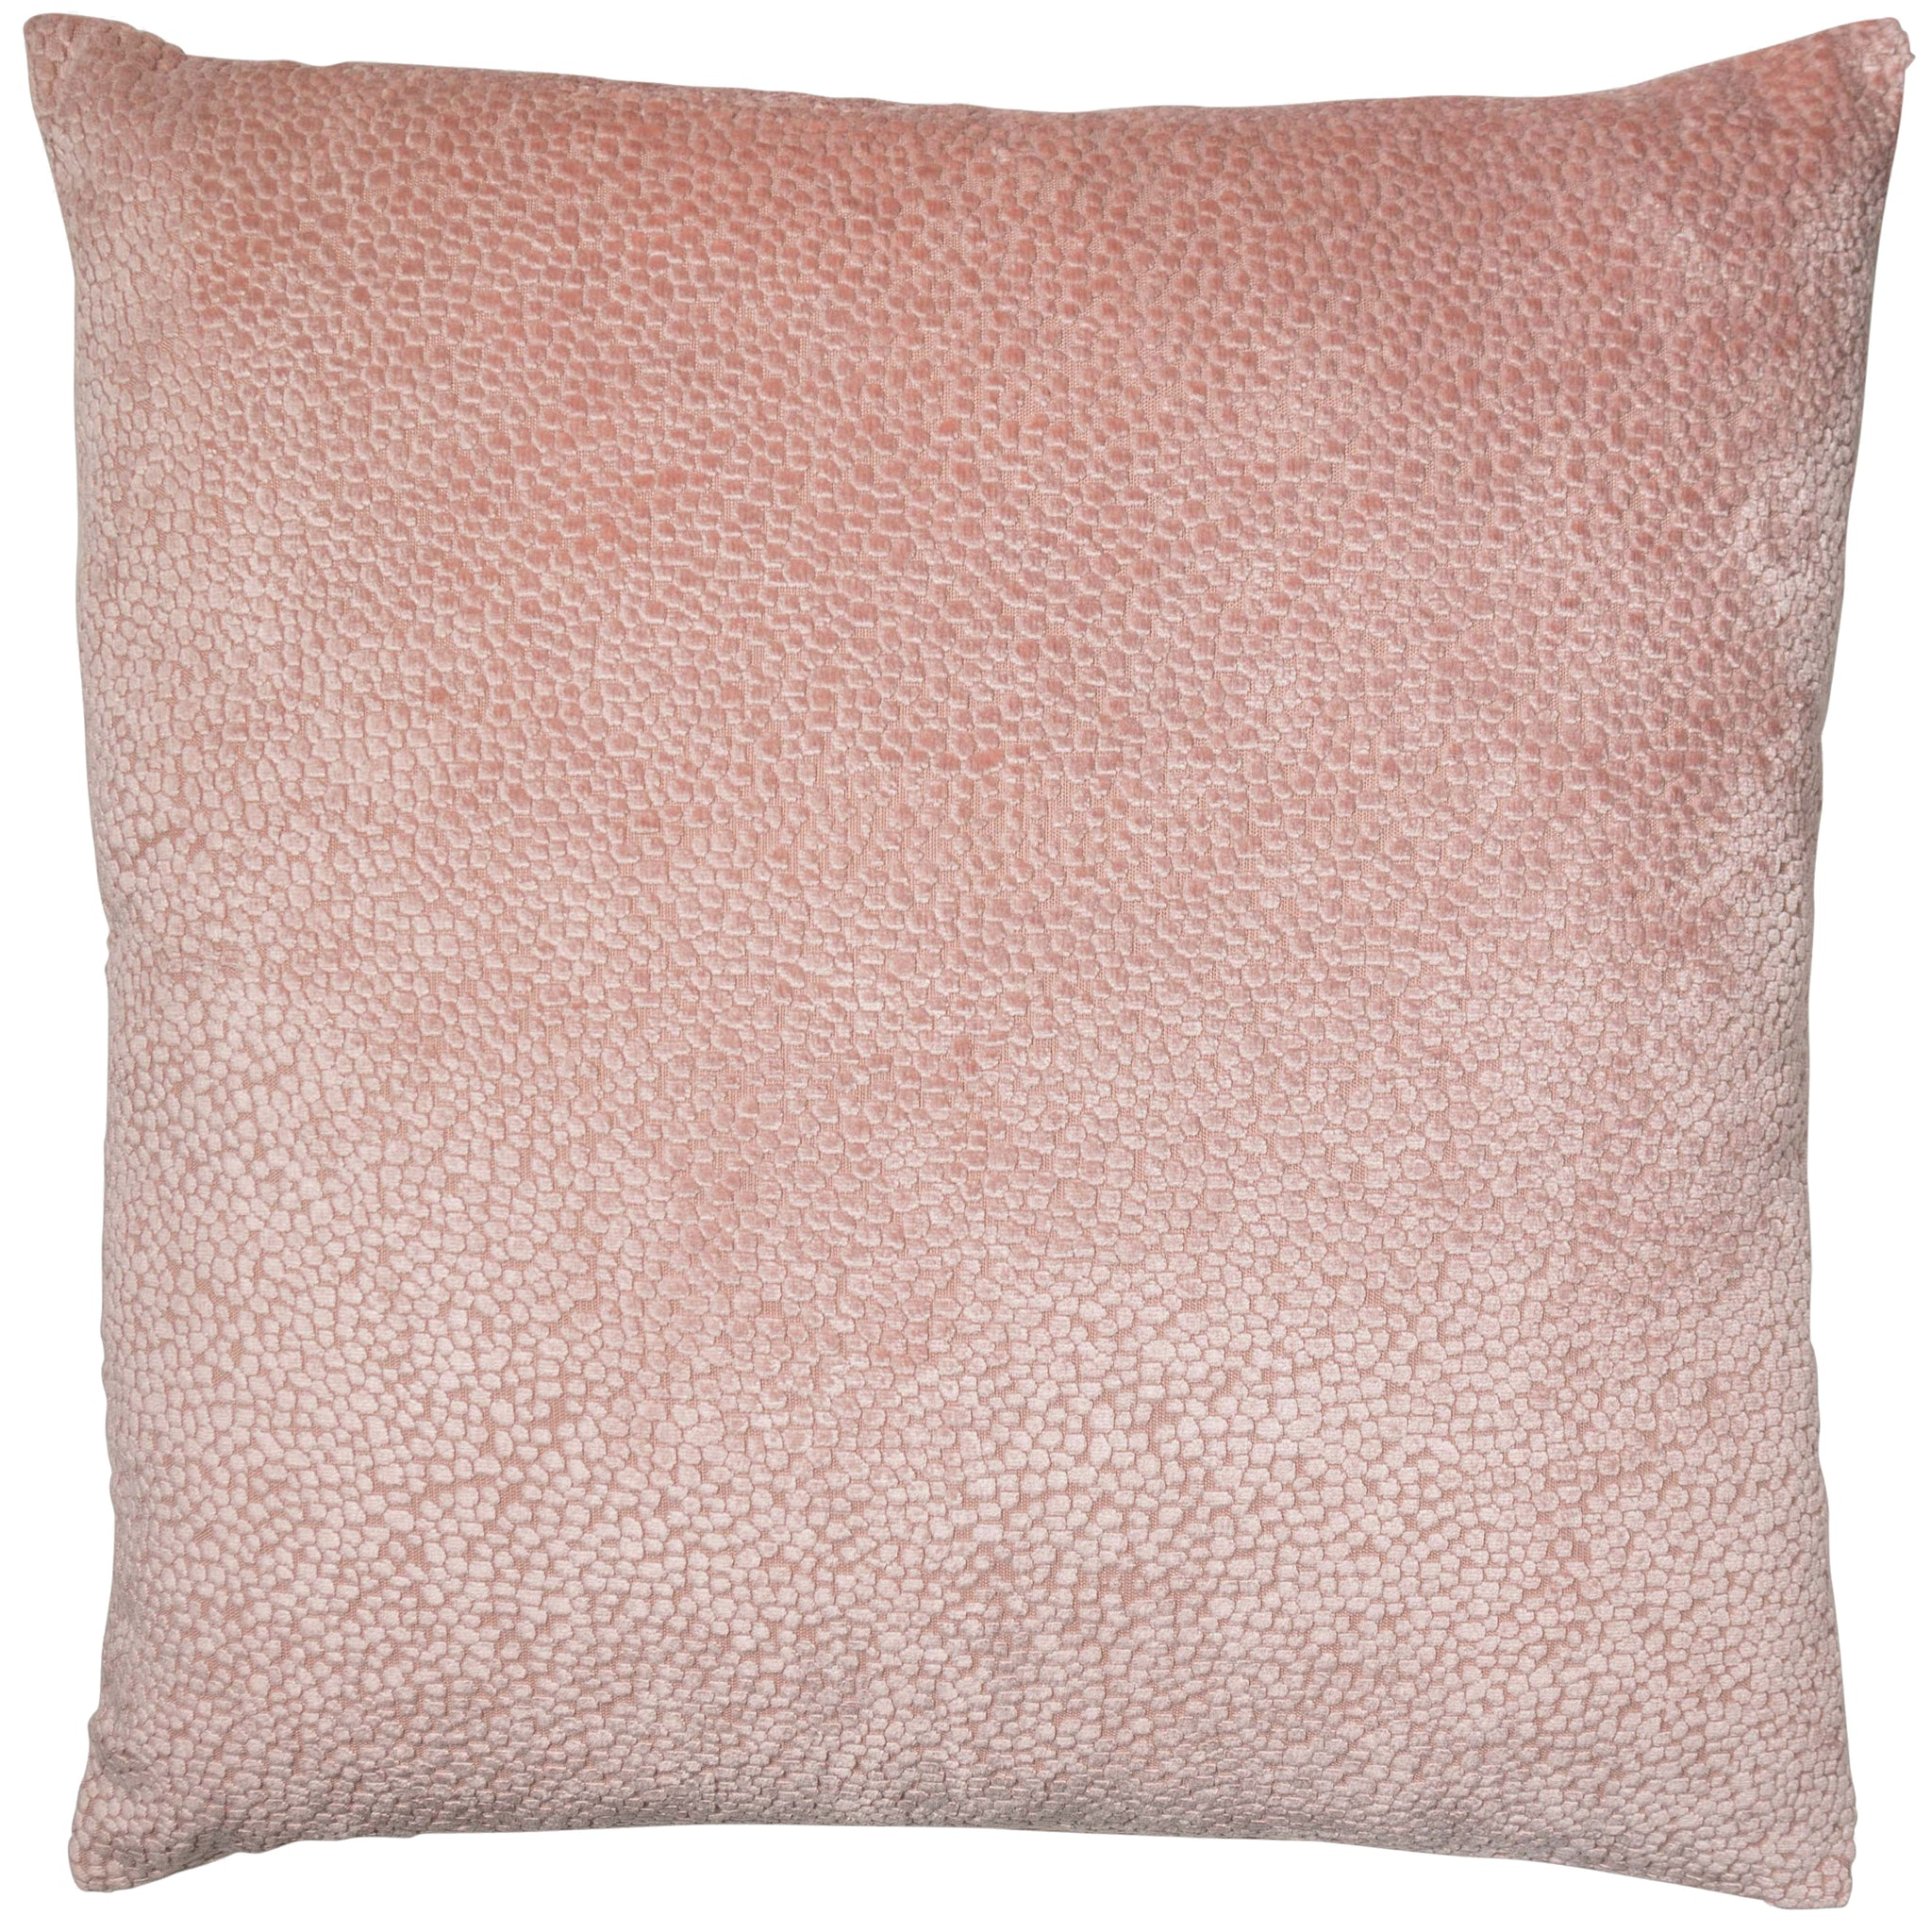 Malini Bingham Putty Cushion-Cushion-The Modern Home Shop